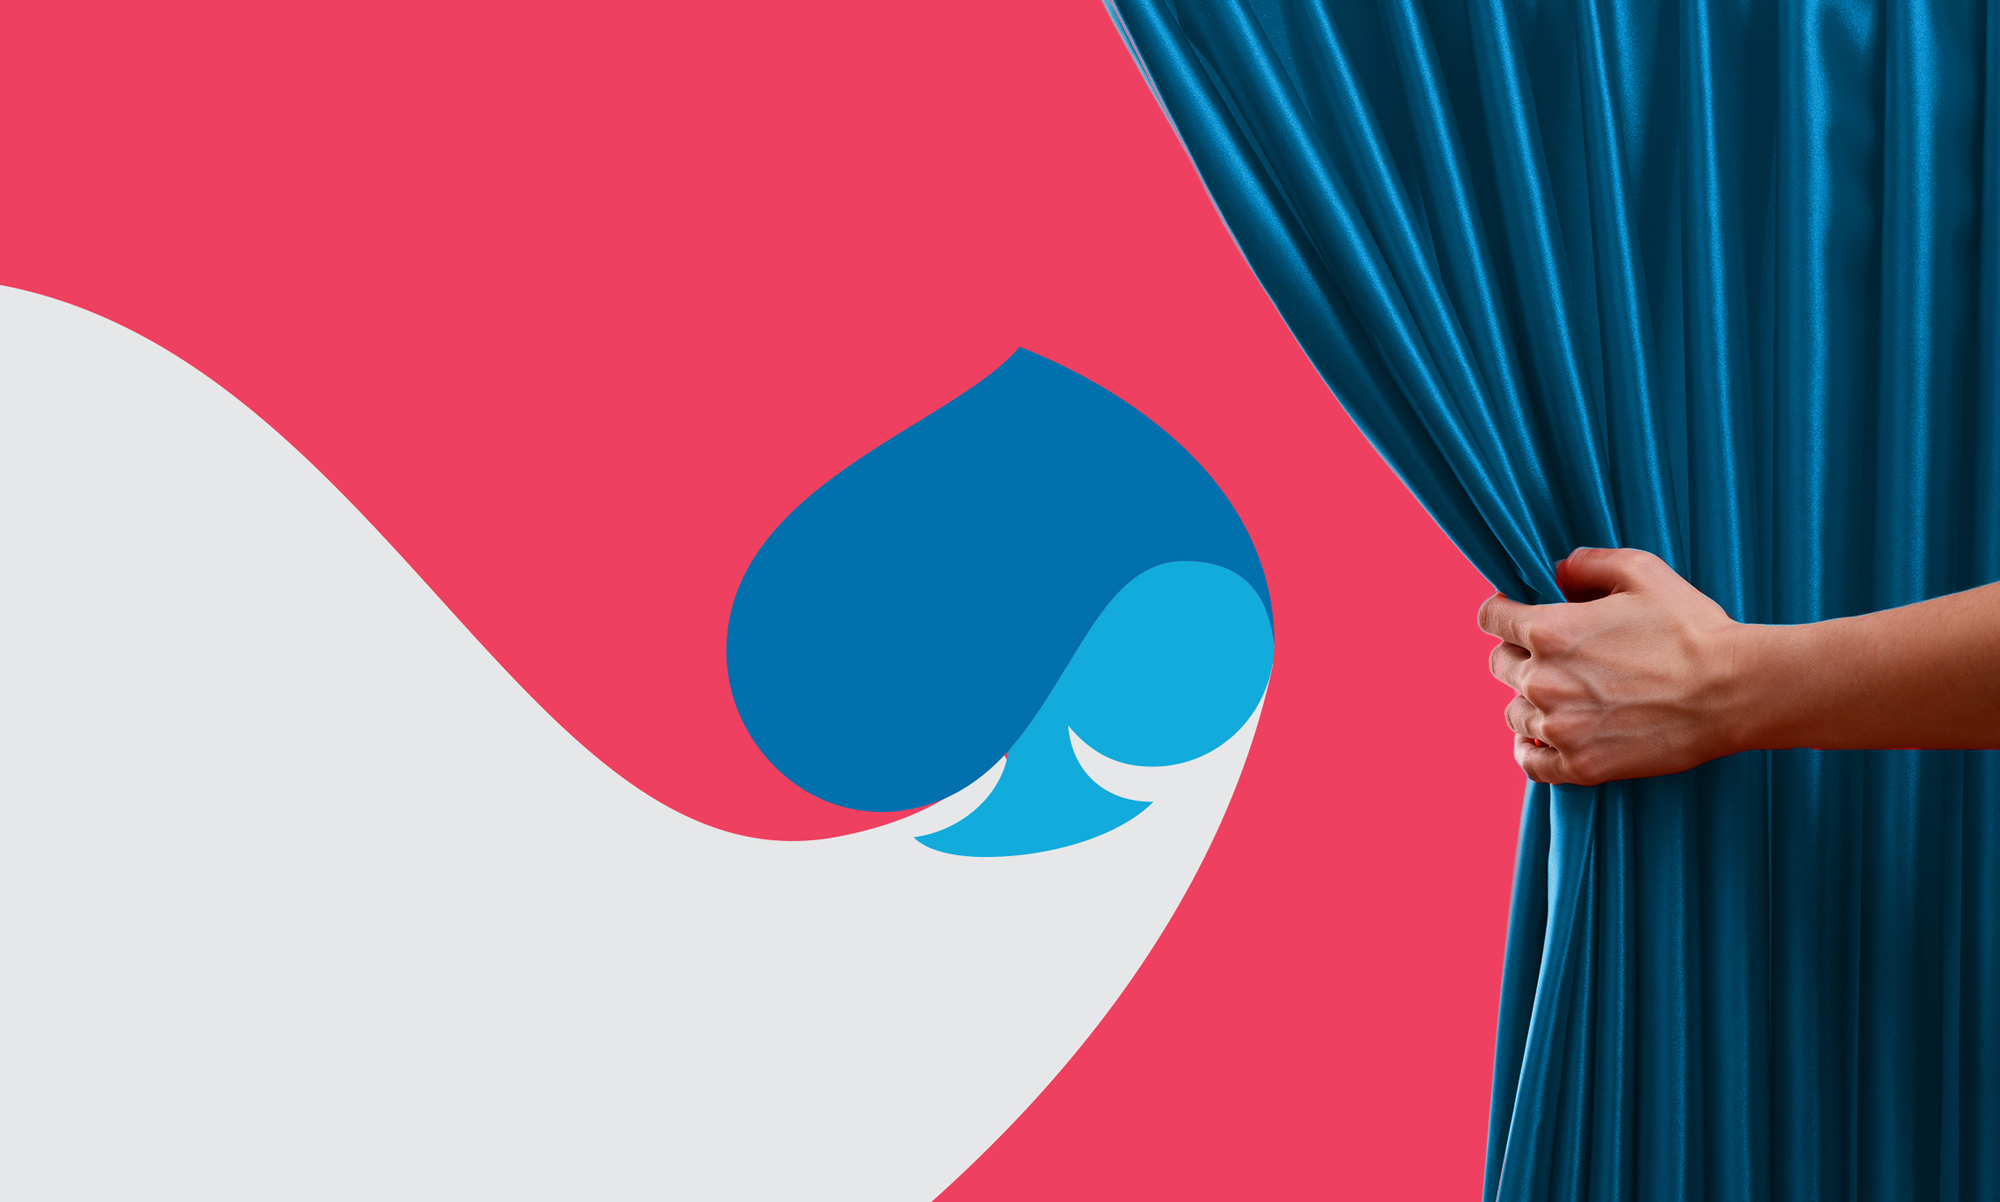 Capgemini looks to the future with a new brand identity.